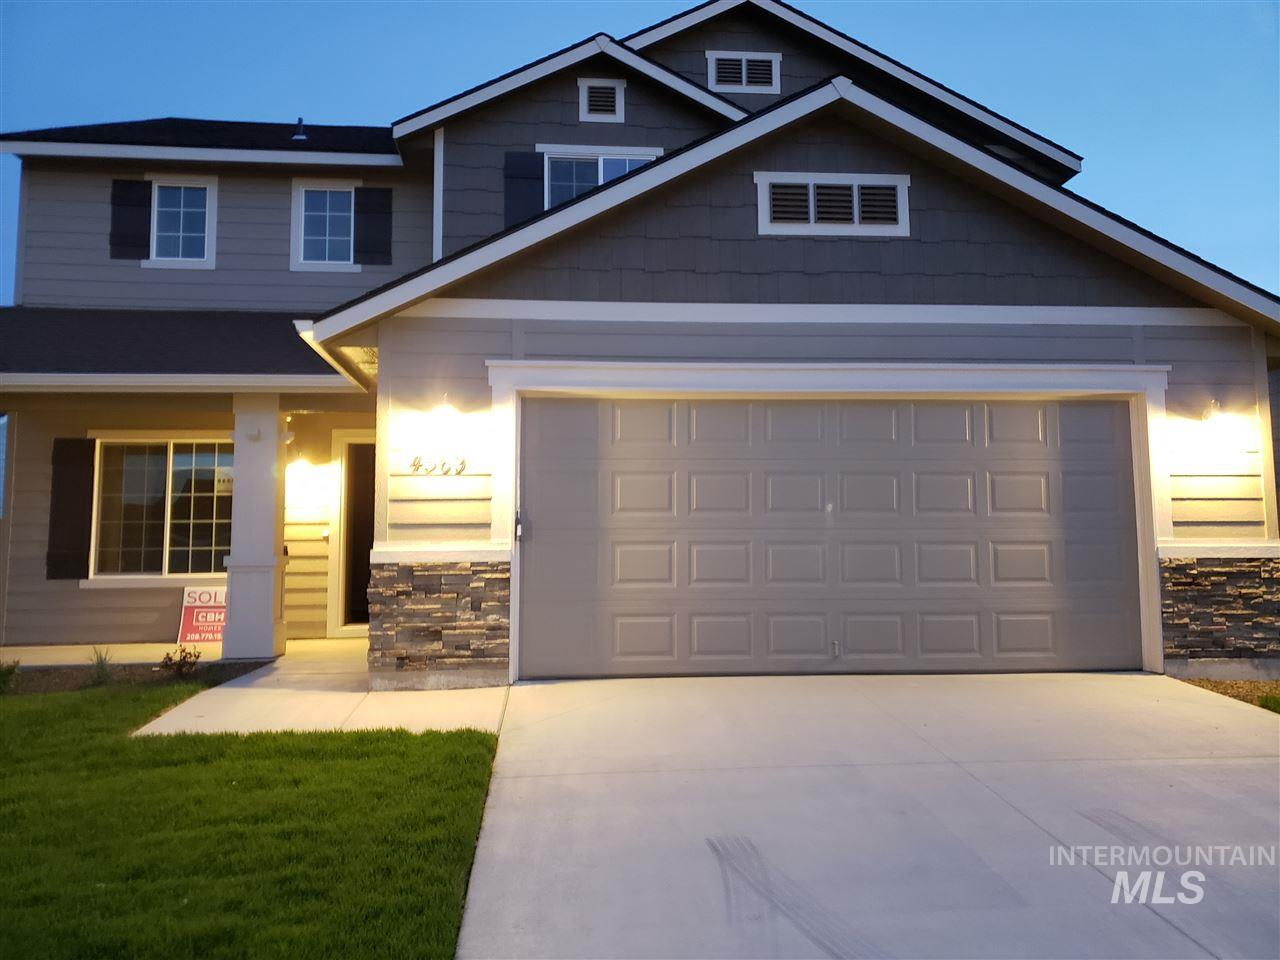 4569 S Middle Fork Way, Nampa, Idaho 83686, 4 Bedrooms, 2.5 Bathrooms, Rental For Rent, Price $2,025, 98730960